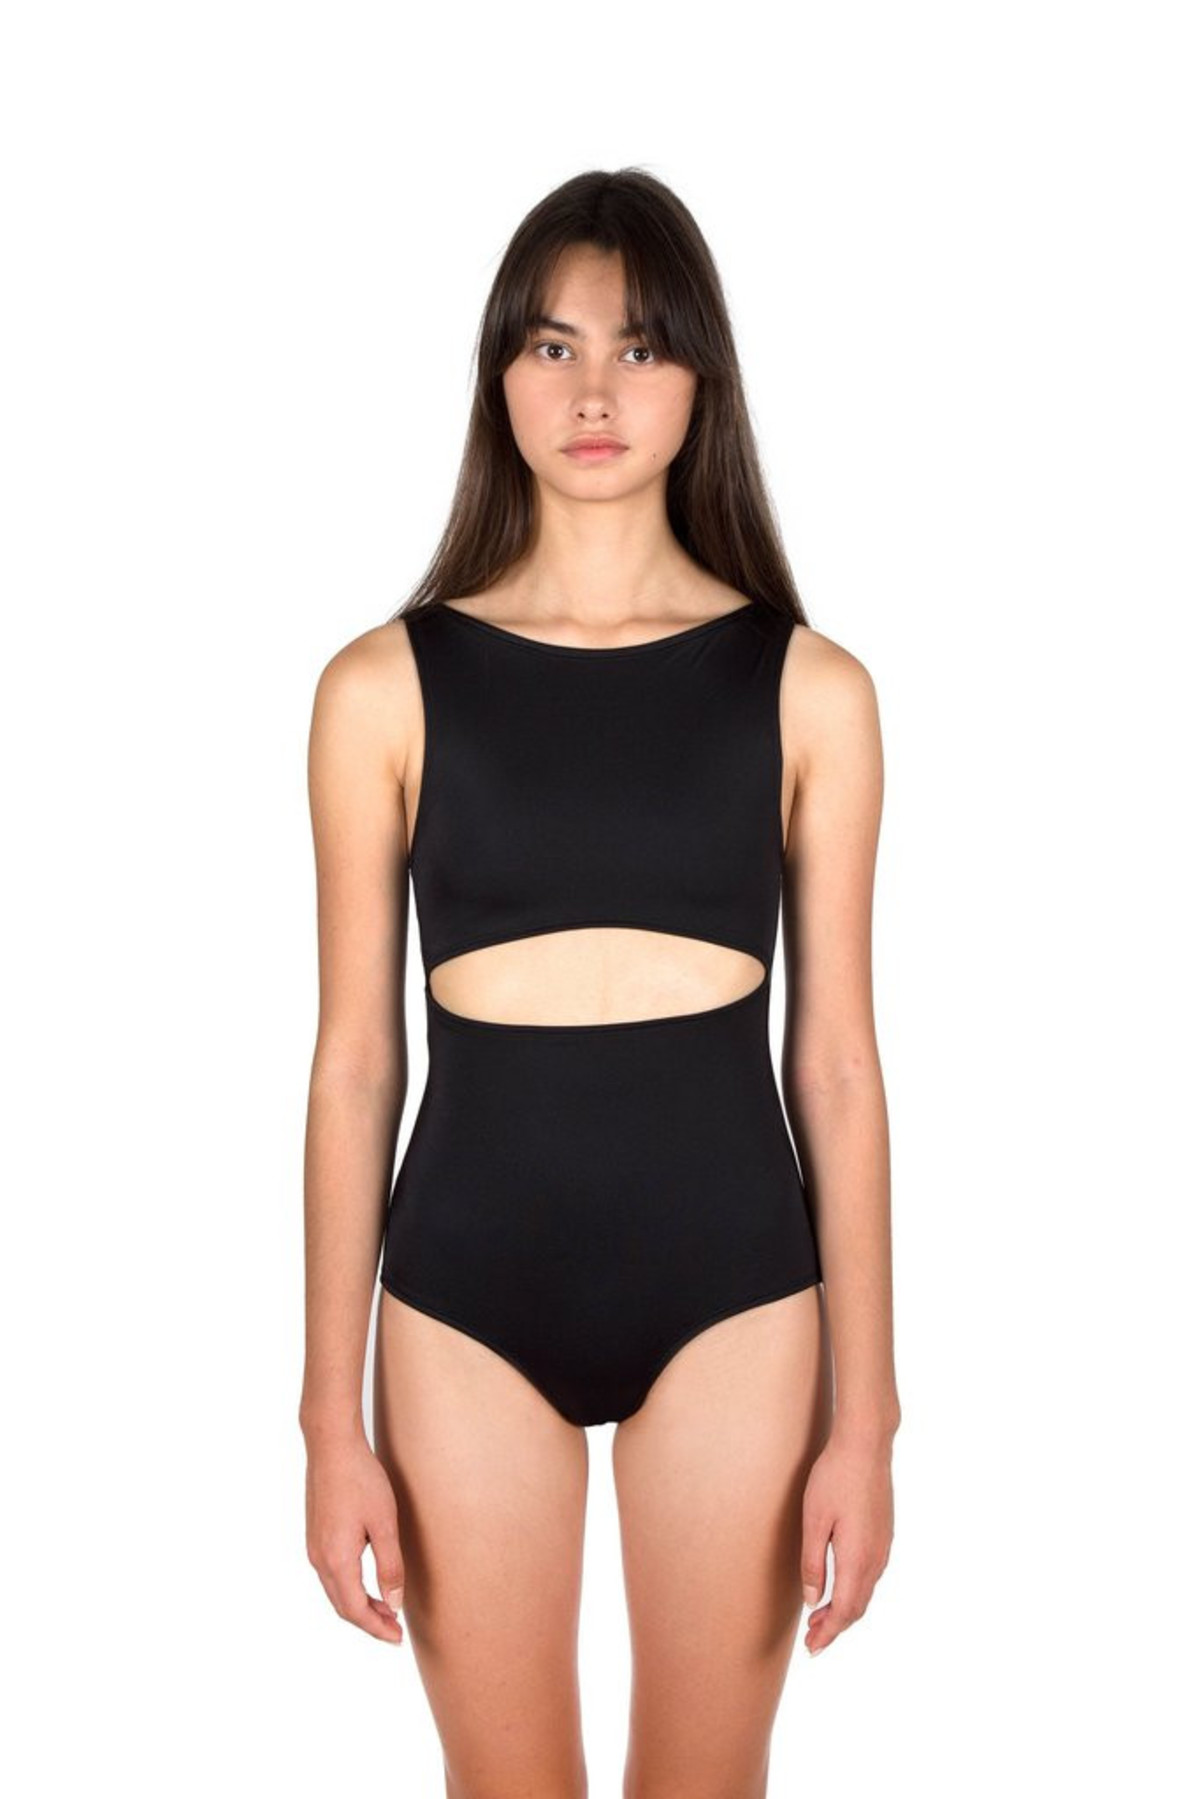 Daneechi Swimwear Australia, Perth's biggest swimwear retailer. Online swimwear store. Stockists of 40 swimwear and beachwear brands including Seafolly, Jets, Baku, Sunseeker. Large bust and chlorine resistant bathers, bikinis, separates and one piece swimwear.